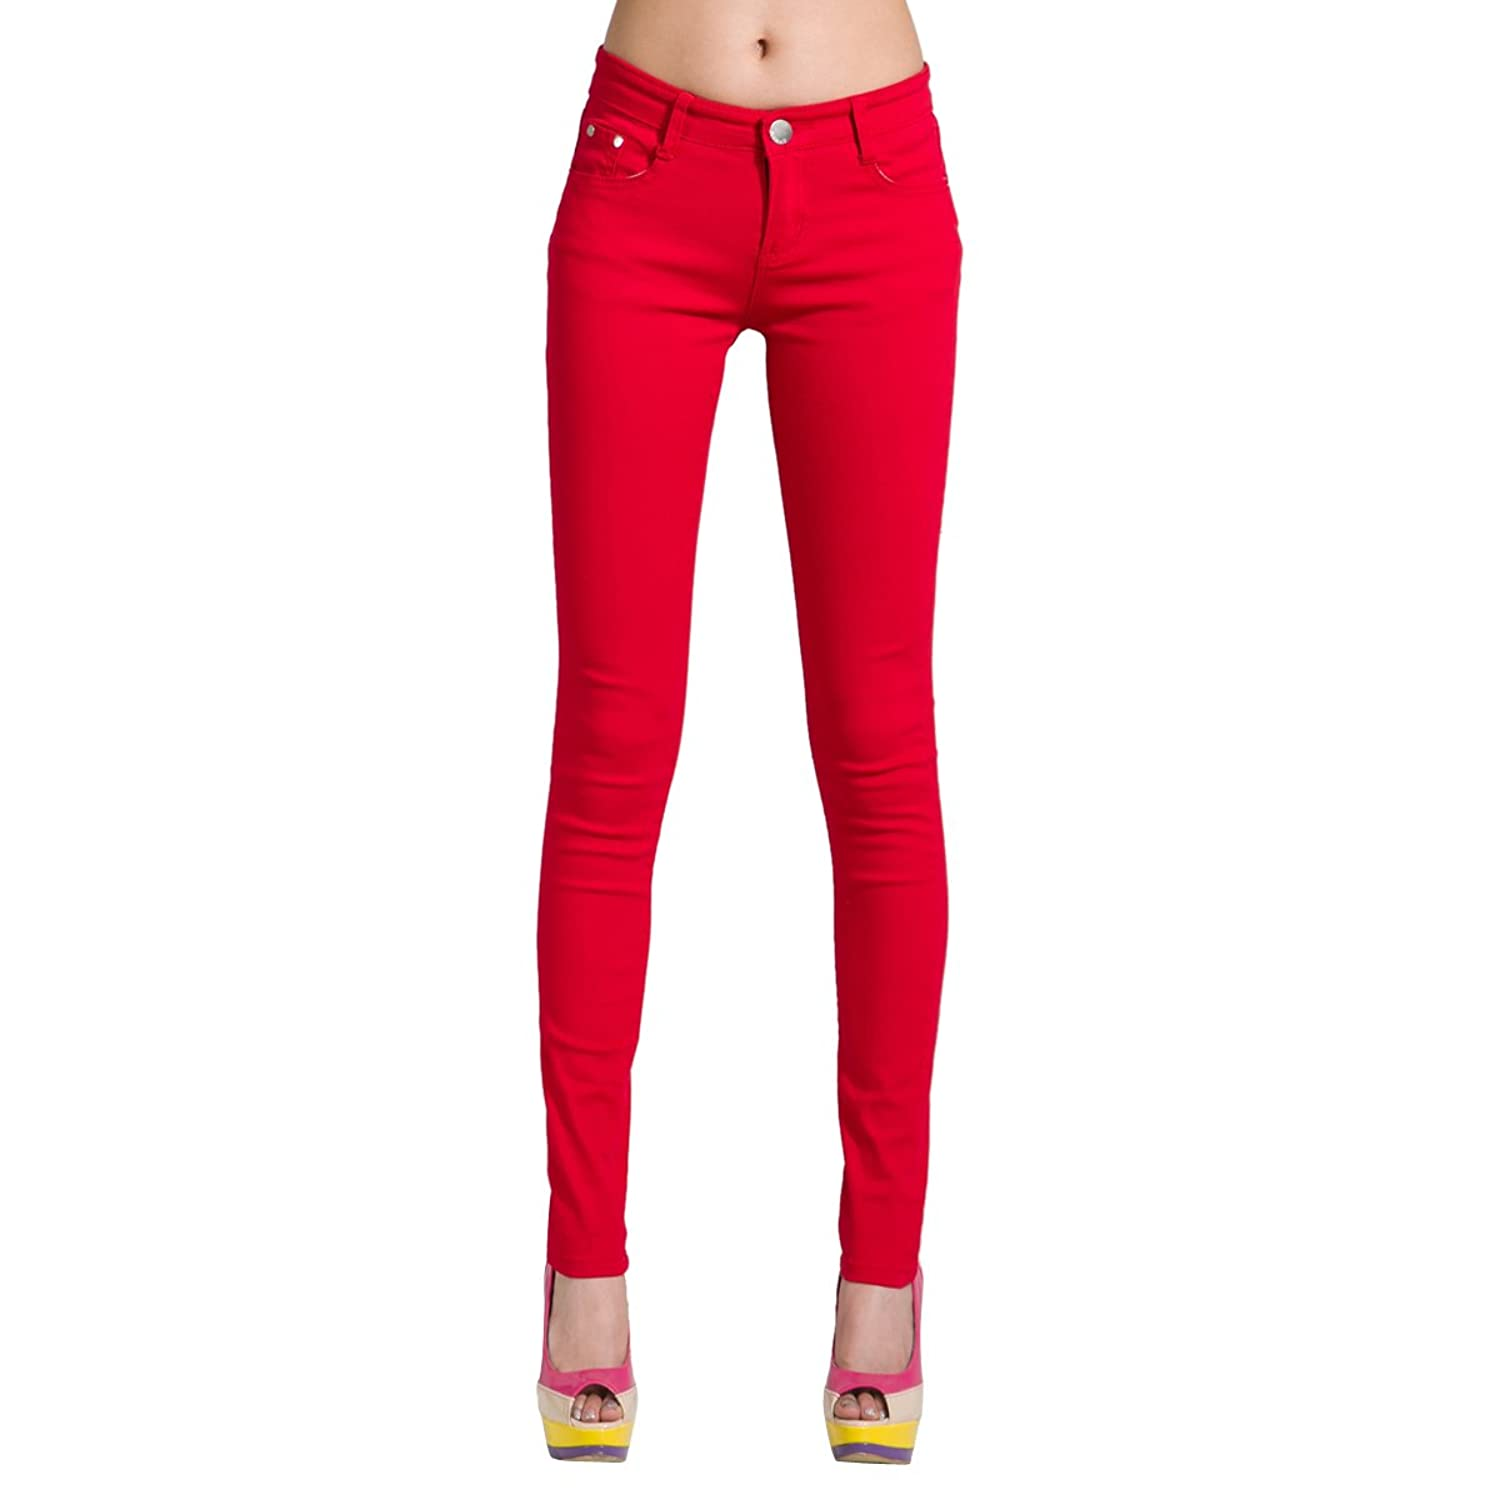 a3ccb881d1ddee Orangetime Women's Butt Lift Slimming Skinny Jeans Mid-Rise Ankle Stretch  Color Pants 5 Pocket Yoga Jeggings